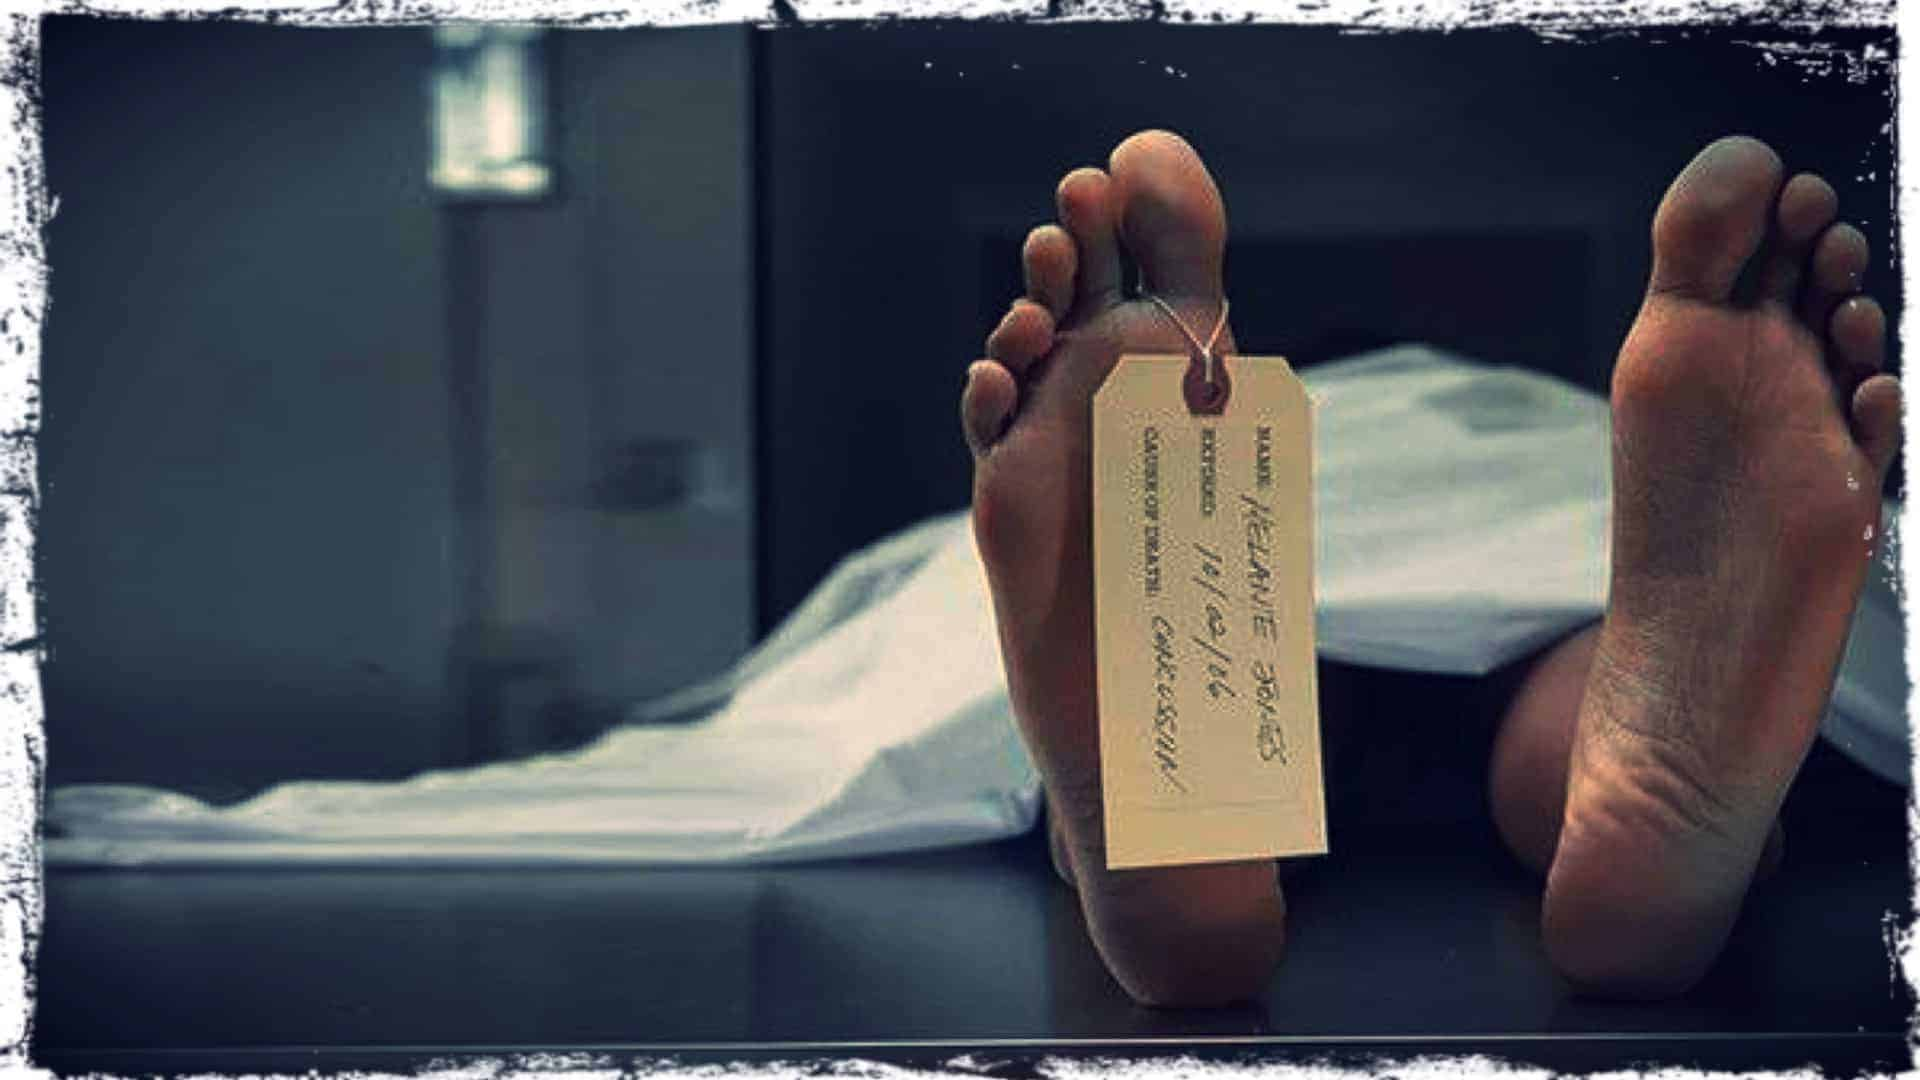 The image shows a close-up of the soles of a person's feet. They are laying on their back, covered by a sheet. A toe tag is attached to one of their feet.